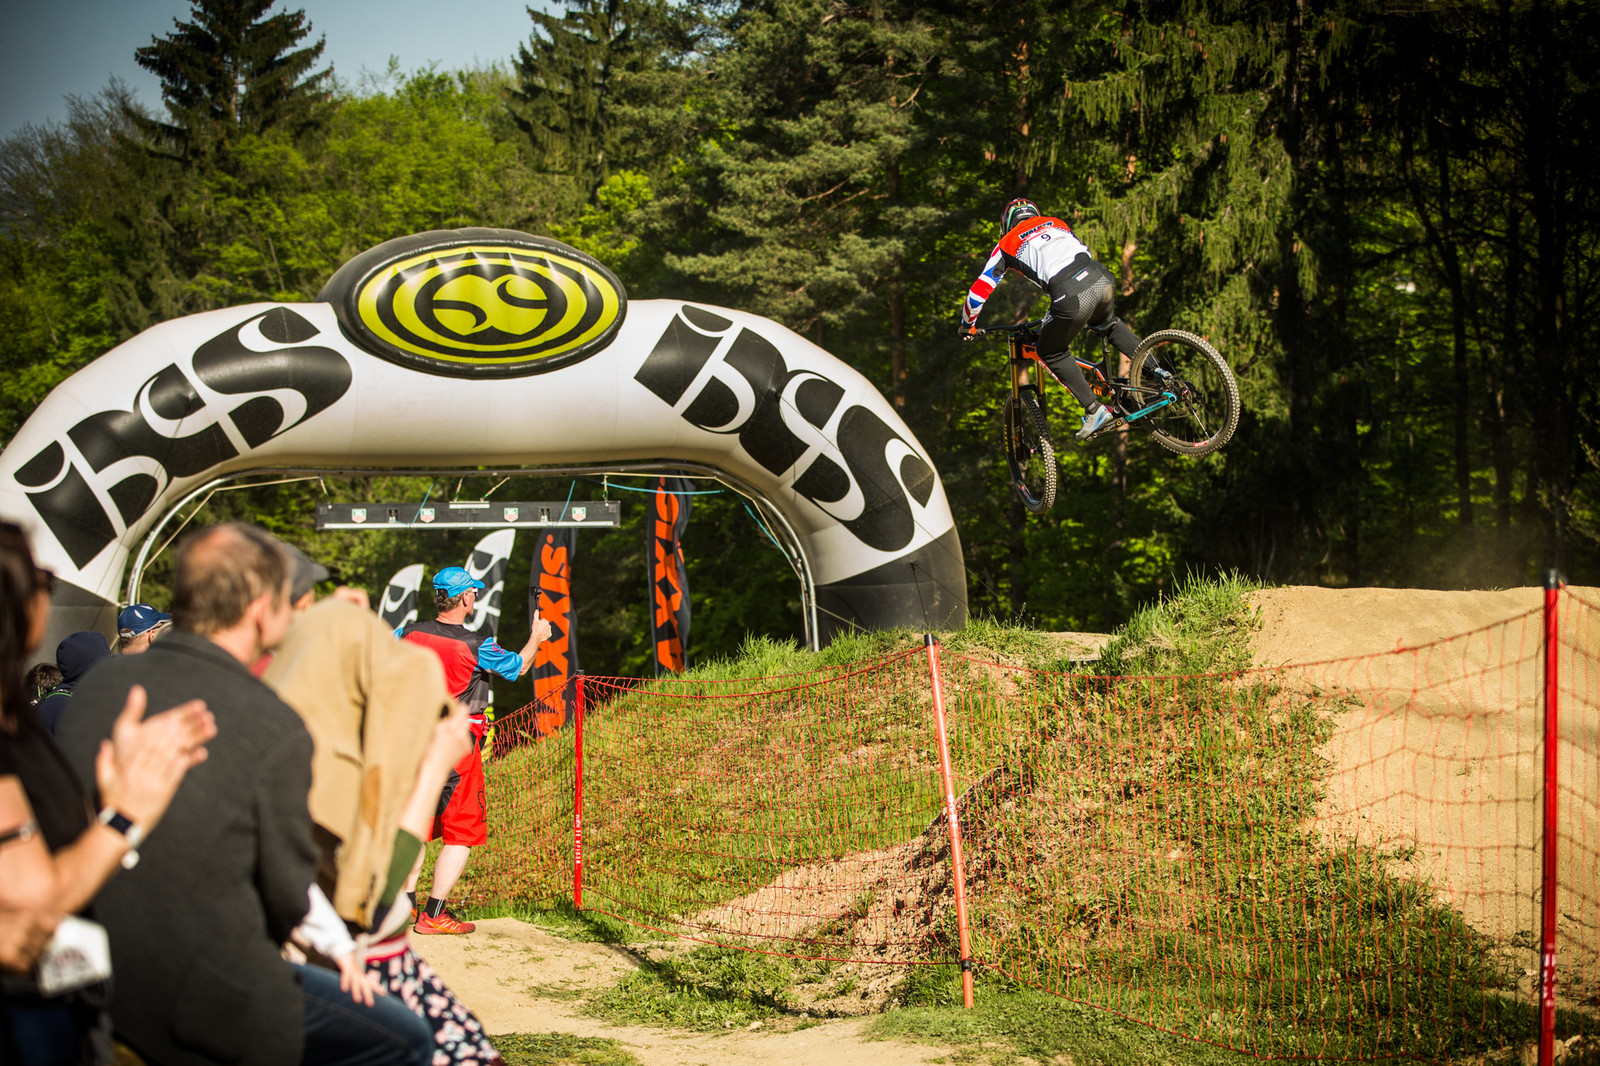 Matt Walker on His Way to Victory - iXS Downhill Cup Maribor - Race Gallery - Mountain Biking Pictures - Vital MTB